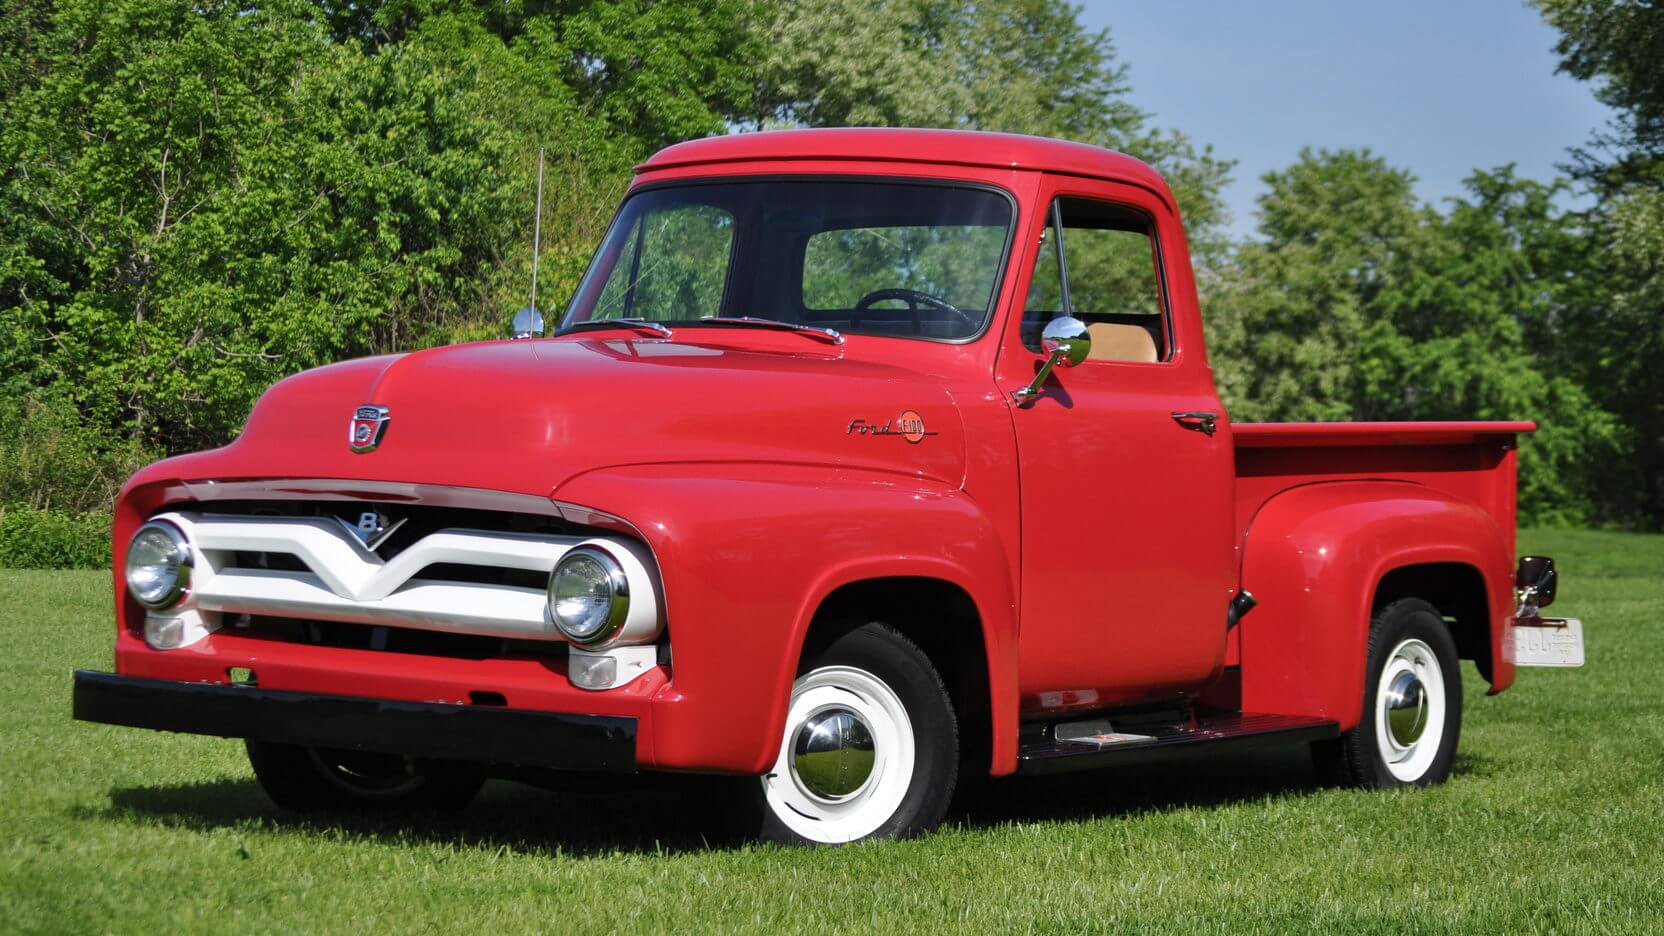 1955 Ford F 100 Chad B Lmc Truck Life F100 Pick Up For Sale